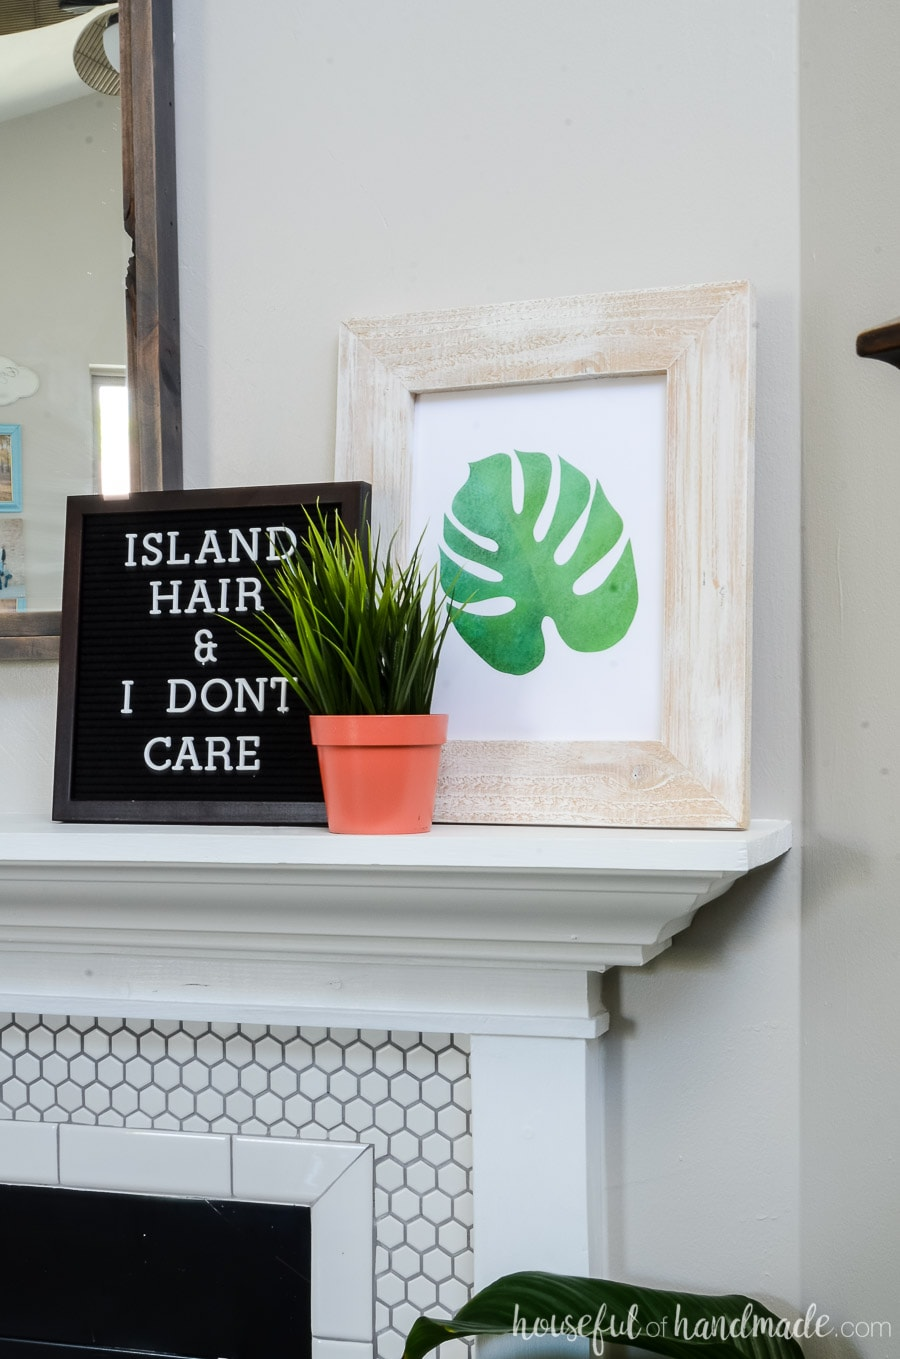 Tropical saying on the letter board and free printable tropical art are the perfect way to decorate from summer on a budget. See the entire tropical living room tour at Housefulofhandmade.com.